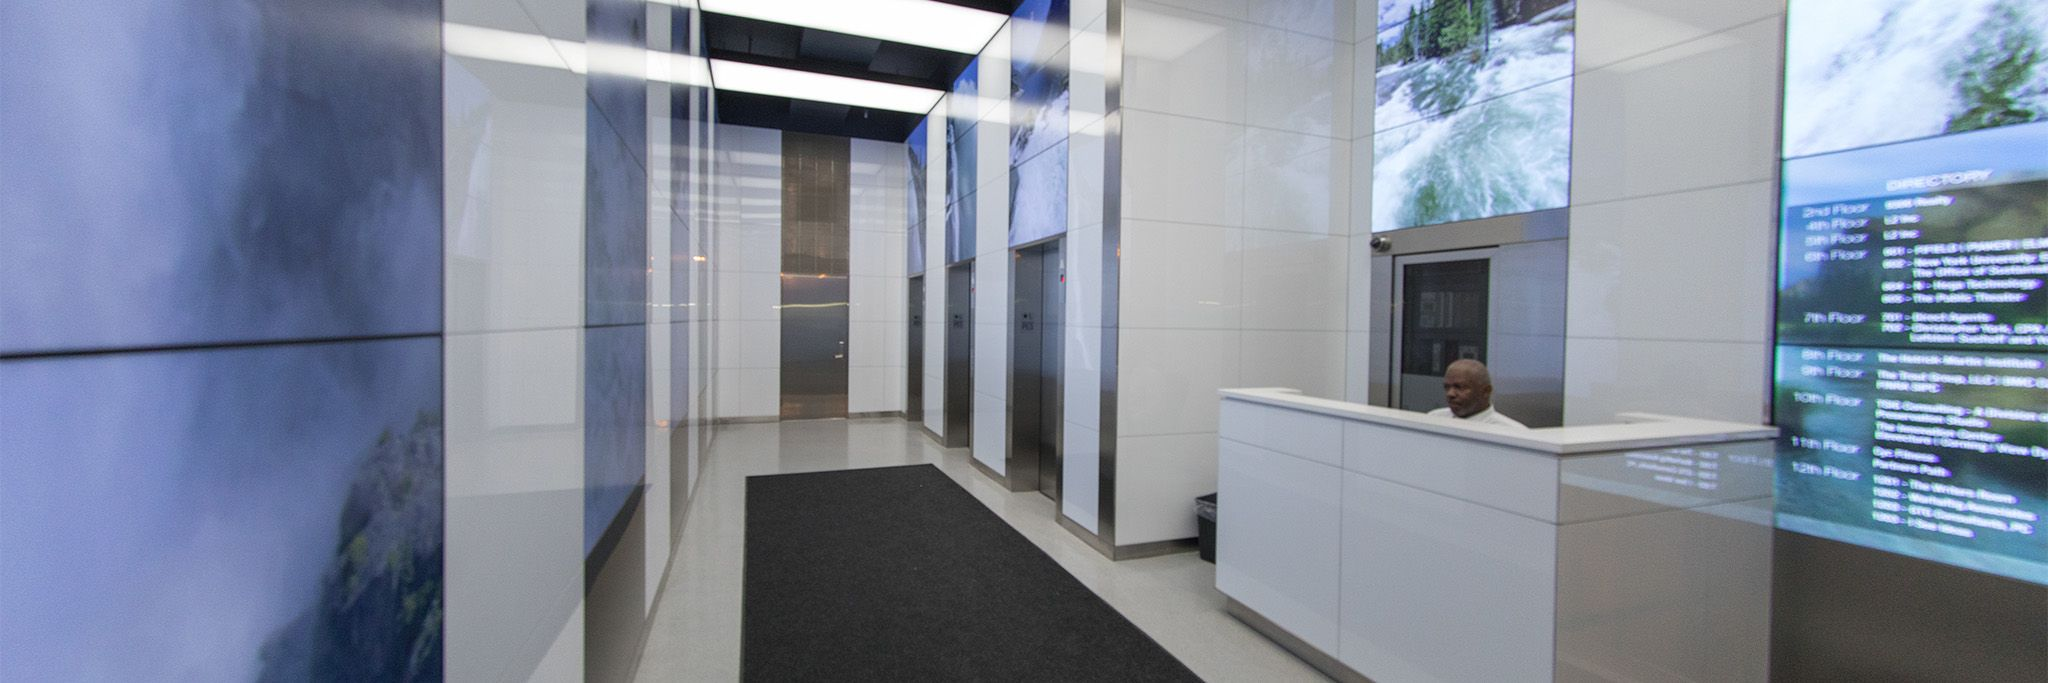 Corning® Gorilla® Glass For Interior Architecture